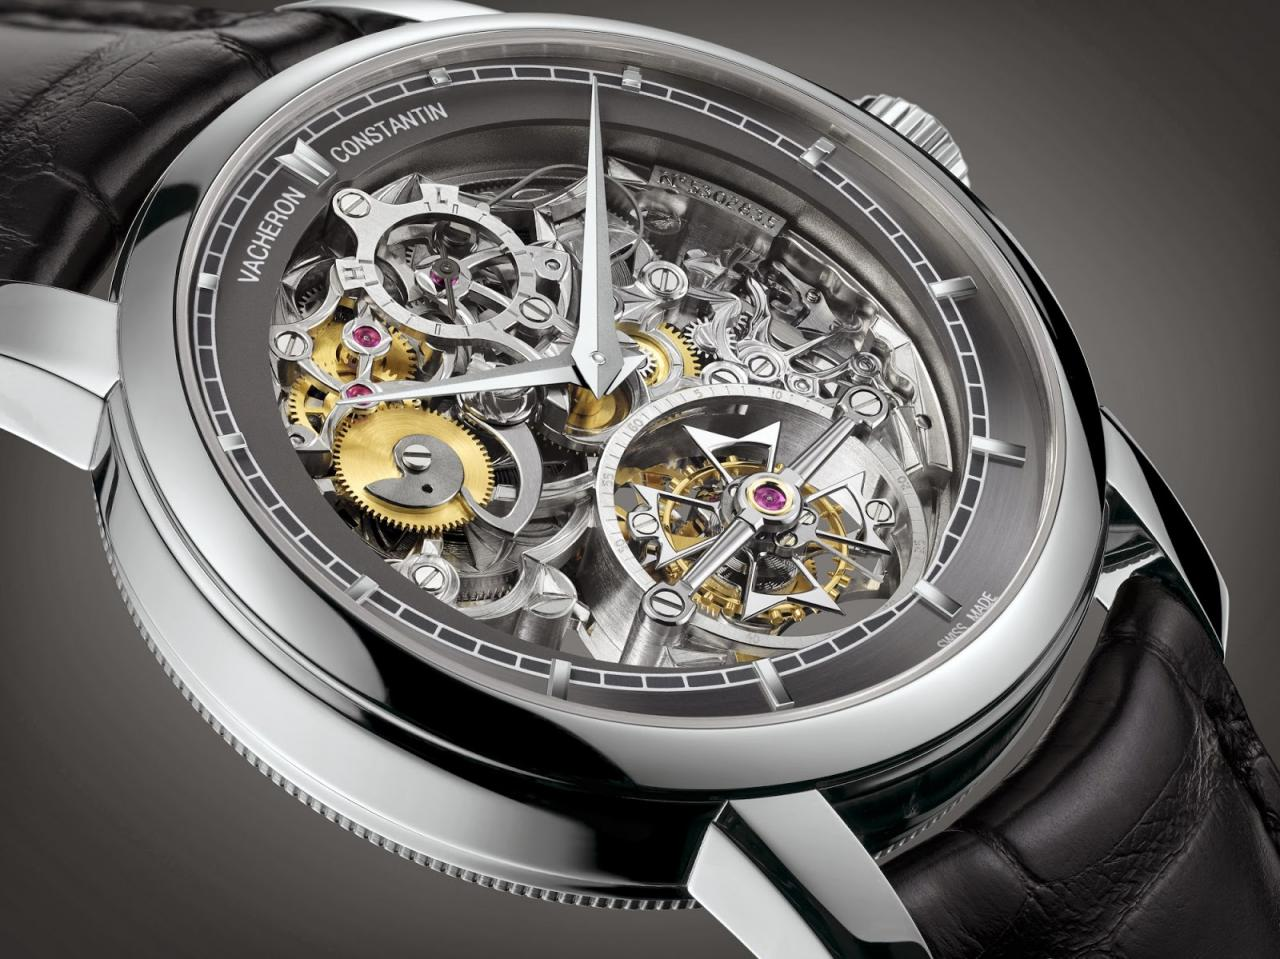 Vacheron Constantin Patrimony Traditionnelle 14-day tourbillon replica